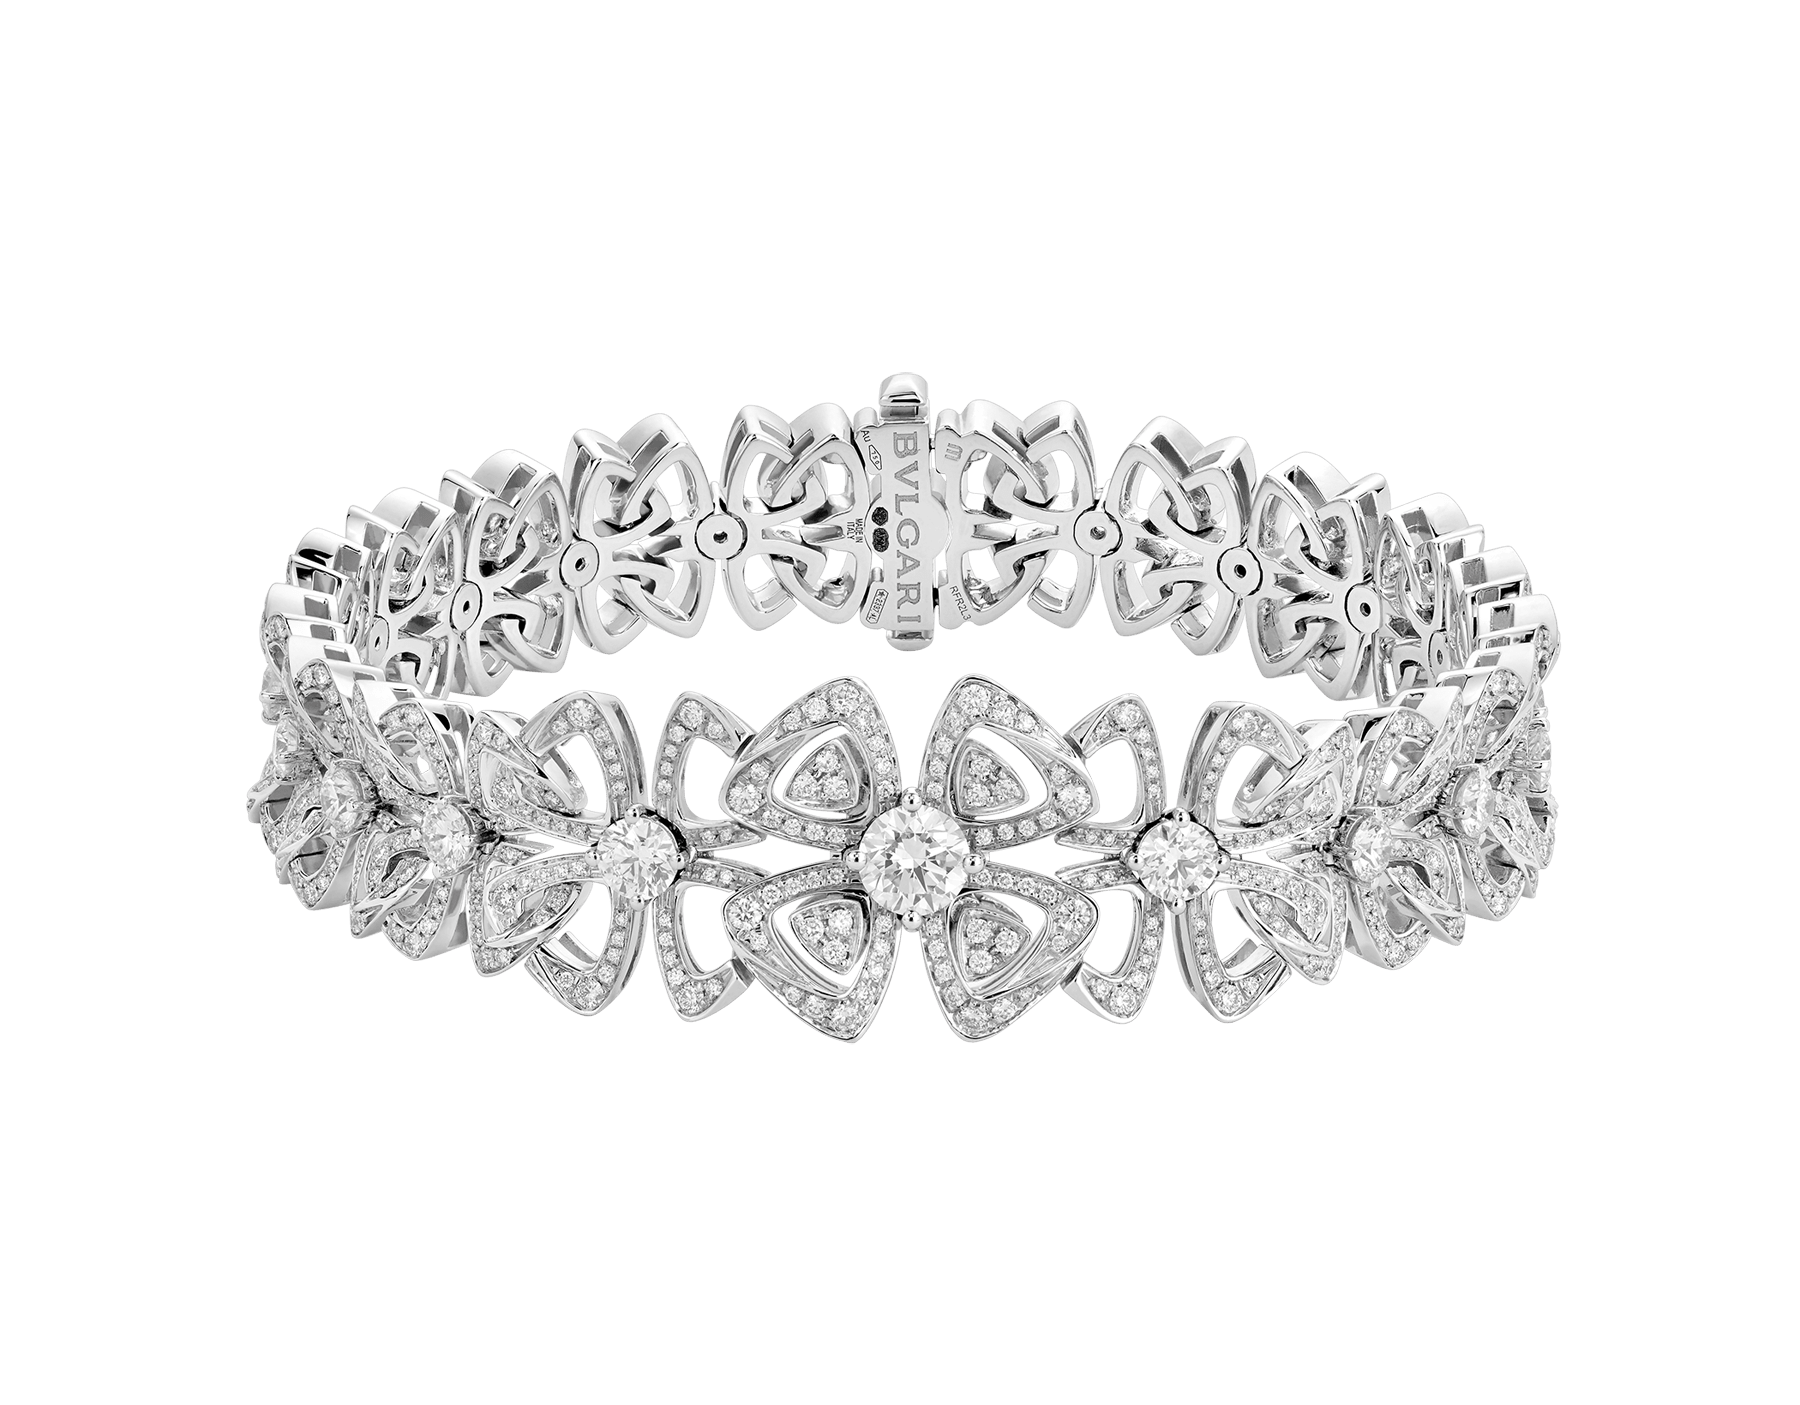 Fiorever 18 kt white gold bracelet set with 20 round brilliant-cut diamonds (2.63 ct) and pavé diamonds (1.85 ct) BR858758 image 1